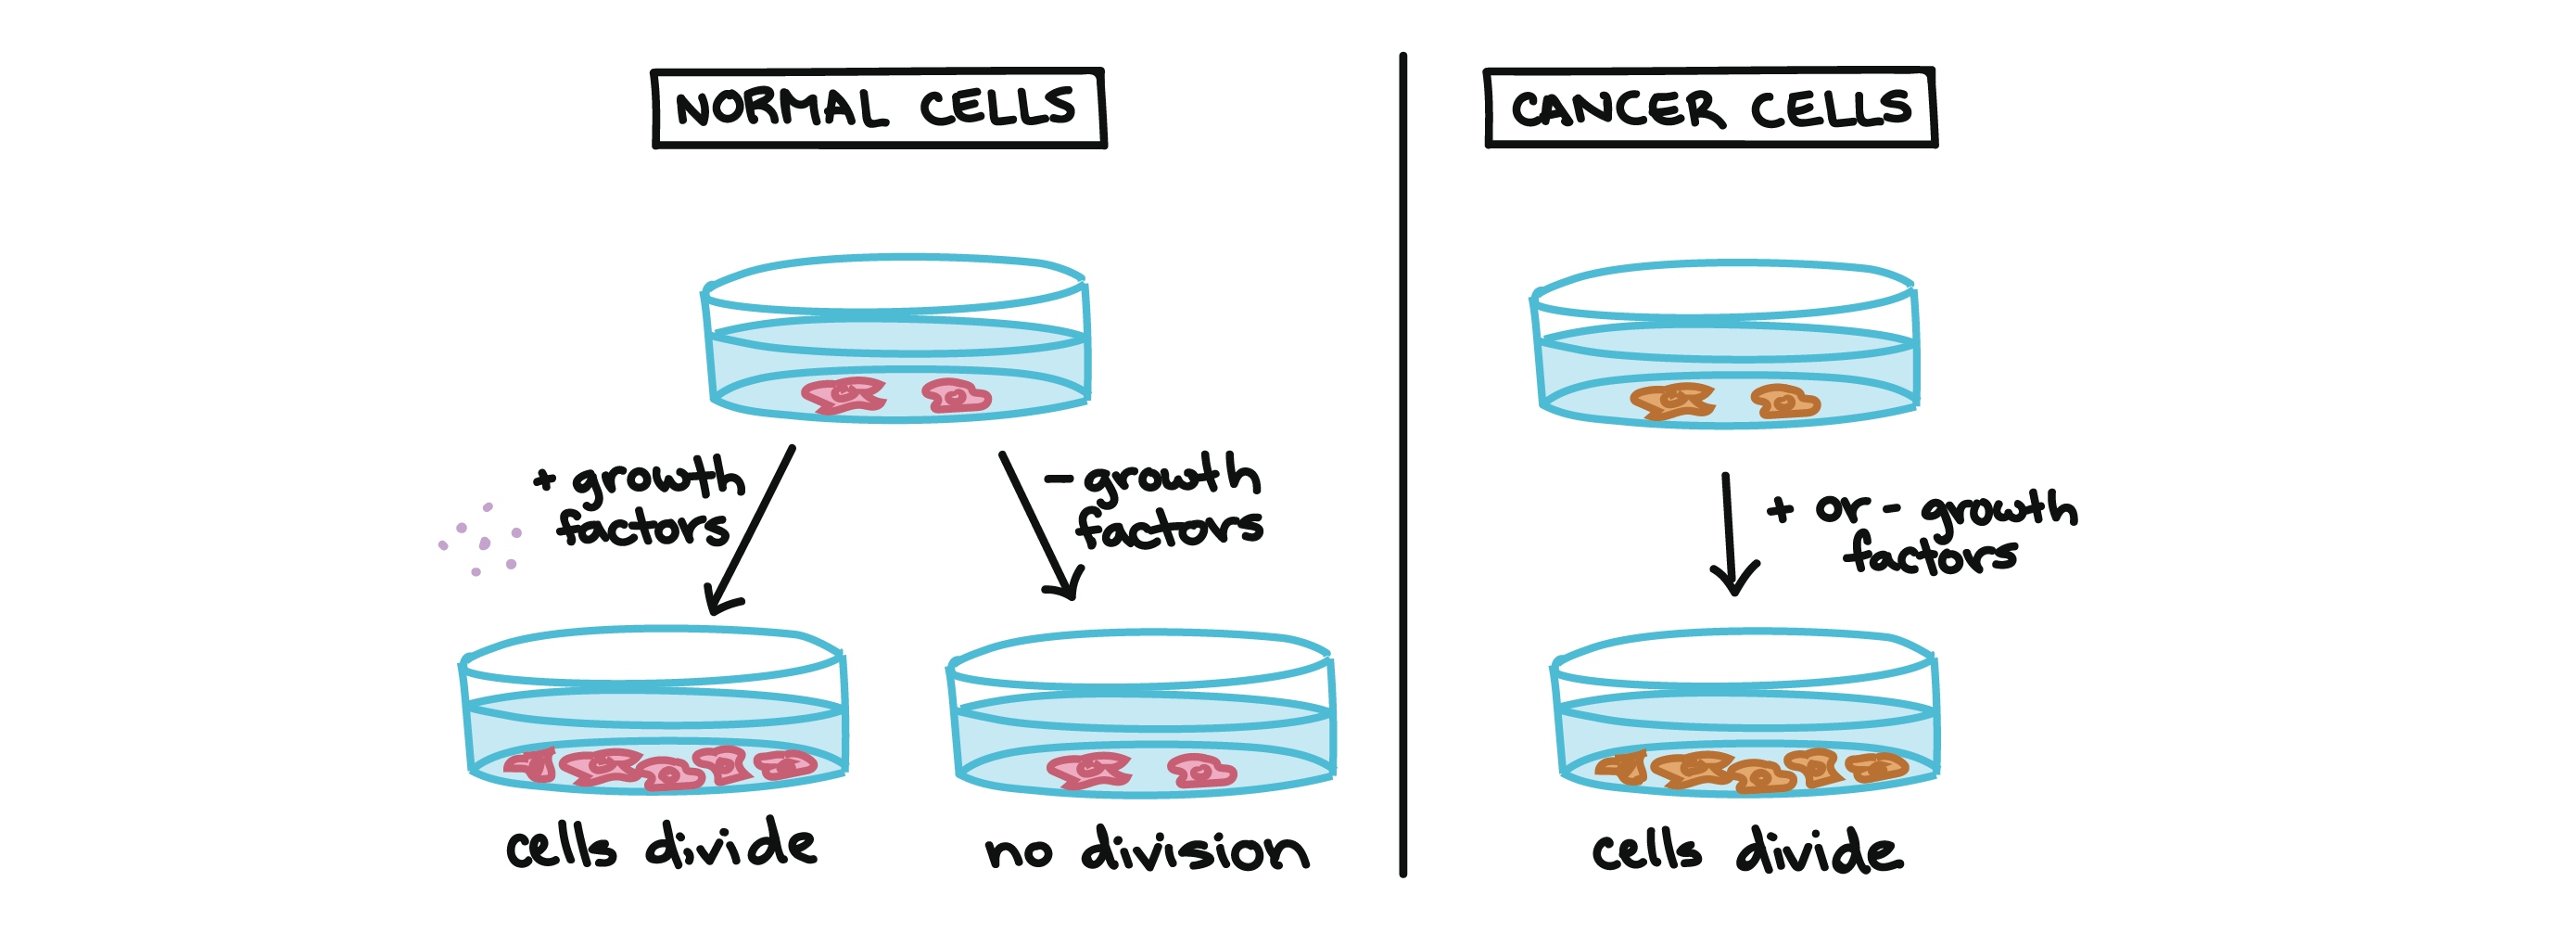 cancer video cell division khan academy